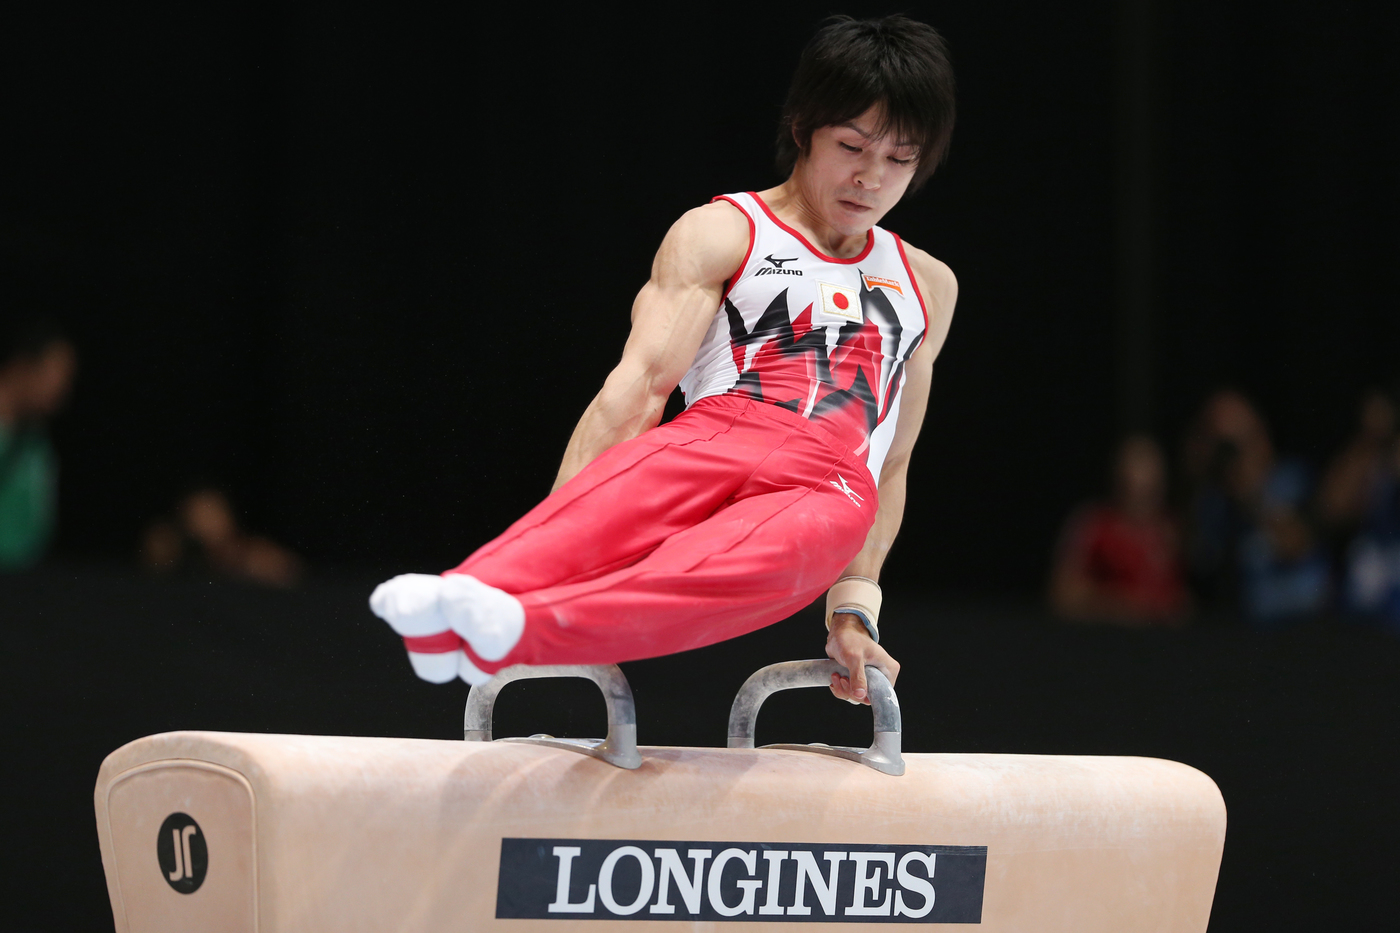 Longines Gymnastics Event: Longines Prize for Elegance awarded to Kyla Ross and Kohei Uchimura at the 44th Artistic Gymnastics World Championships in Antwerp 5